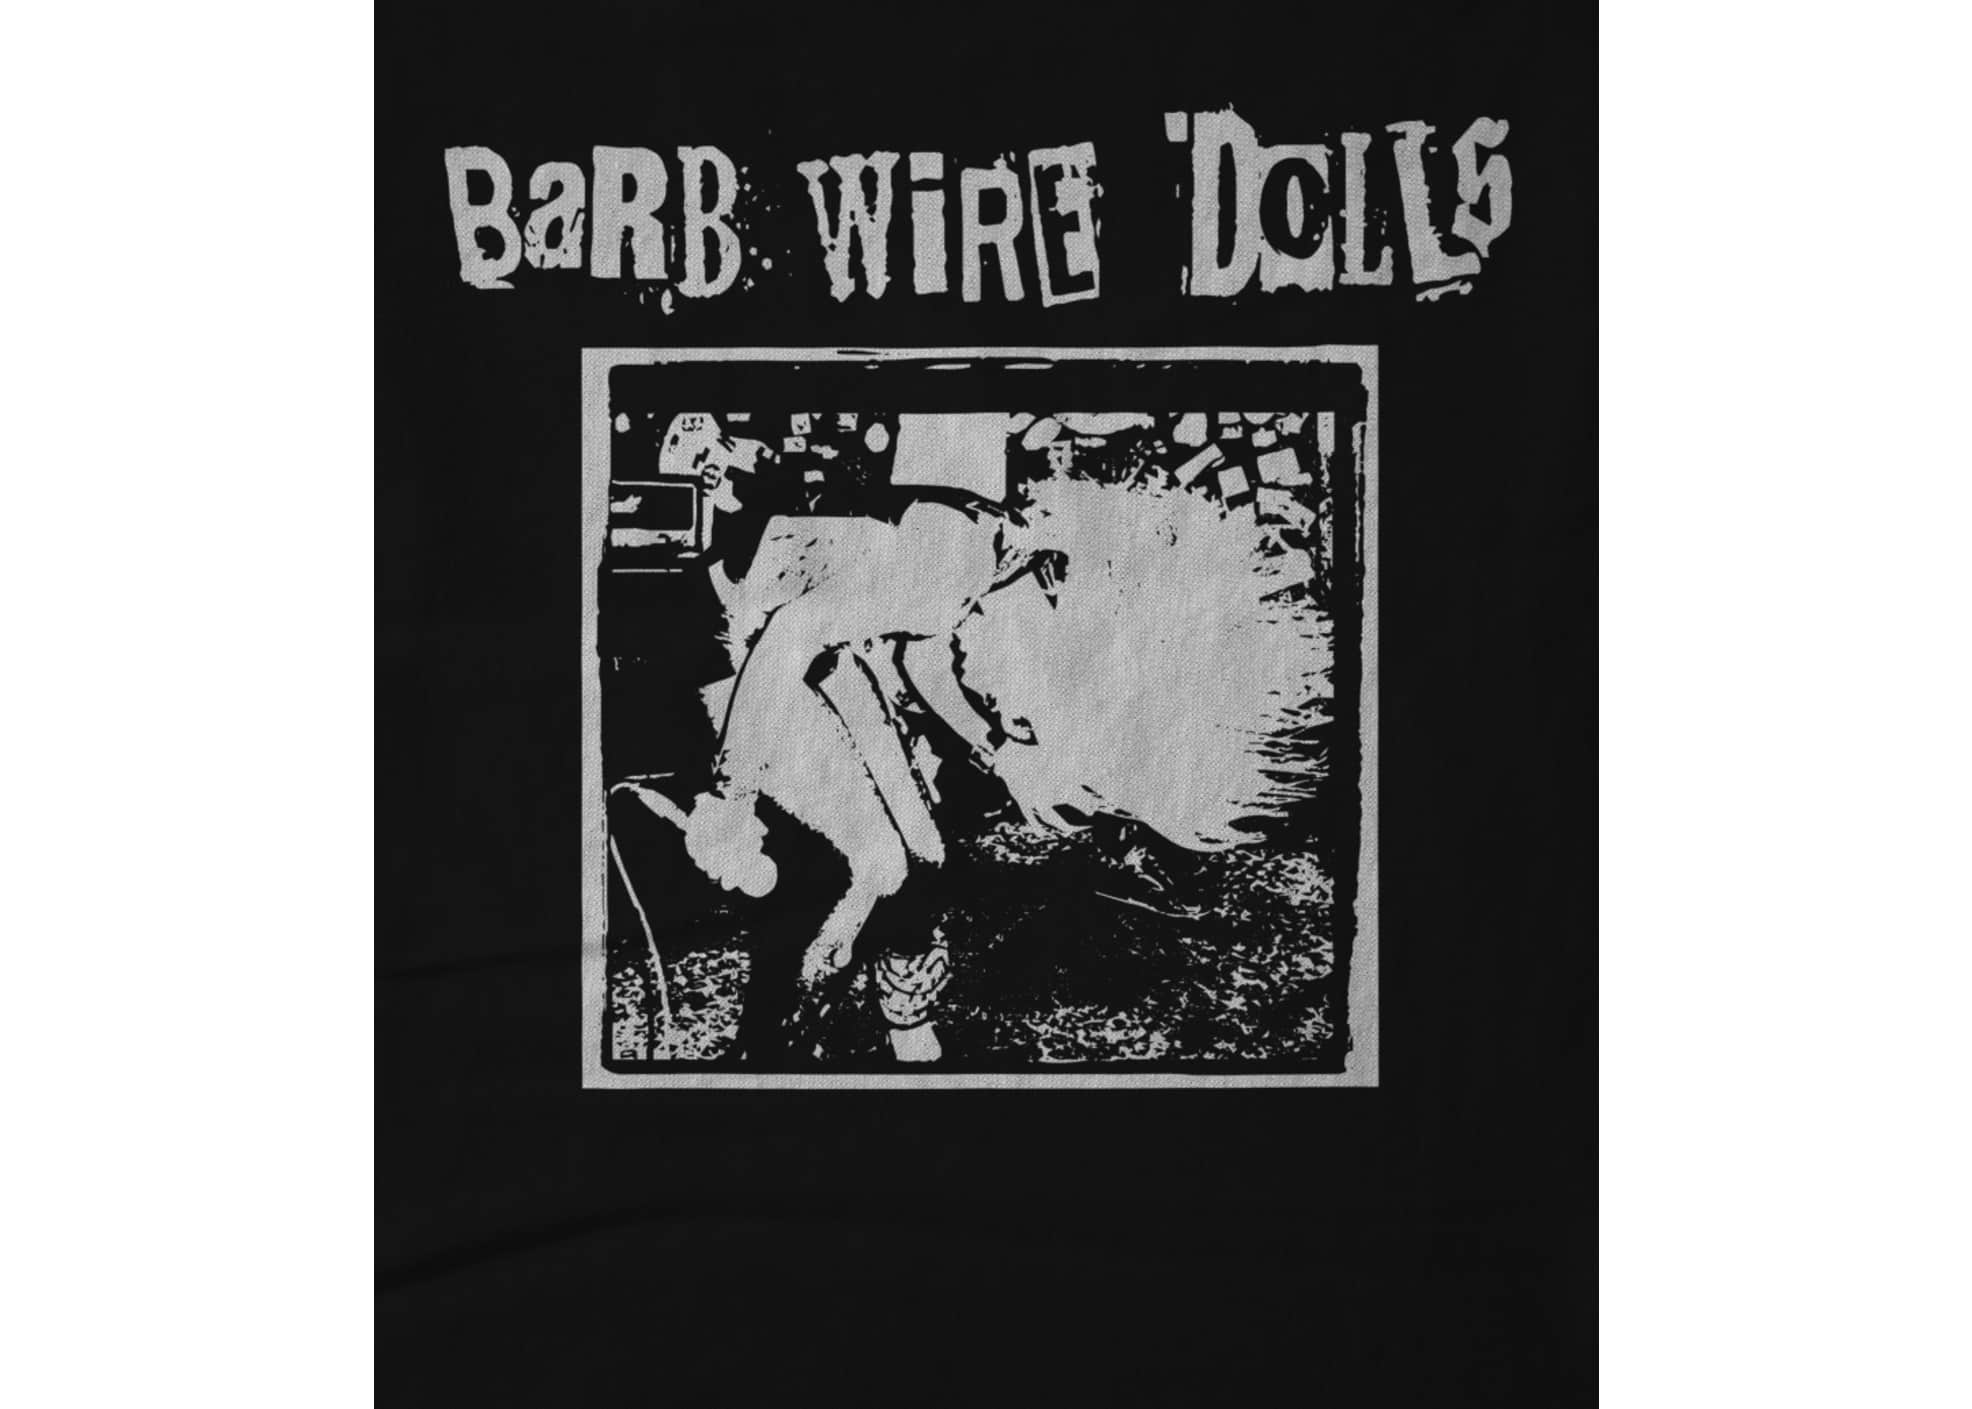 Barb wire dolls   official logo design j8tpoh